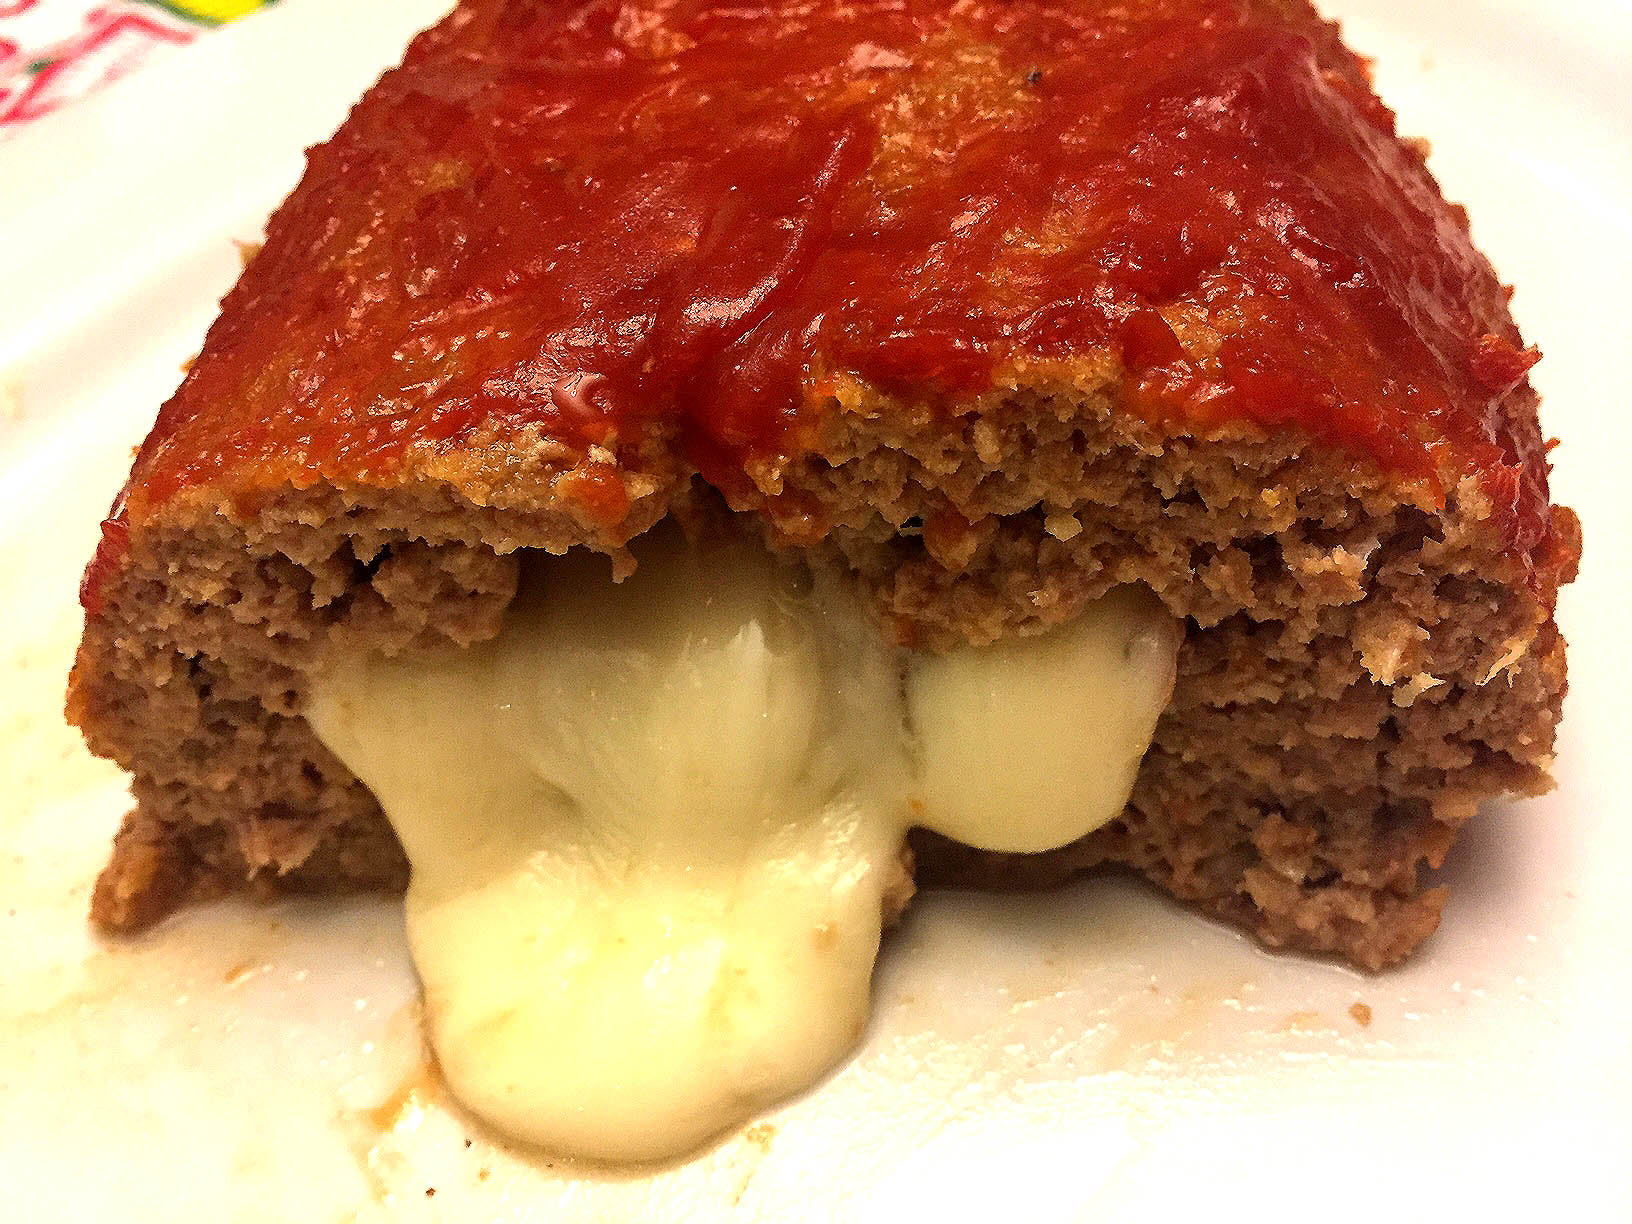 Easy Cheese Stuffed Meatloaf Recipe With Gooey Melted Cheese Inside Melanie Cooks